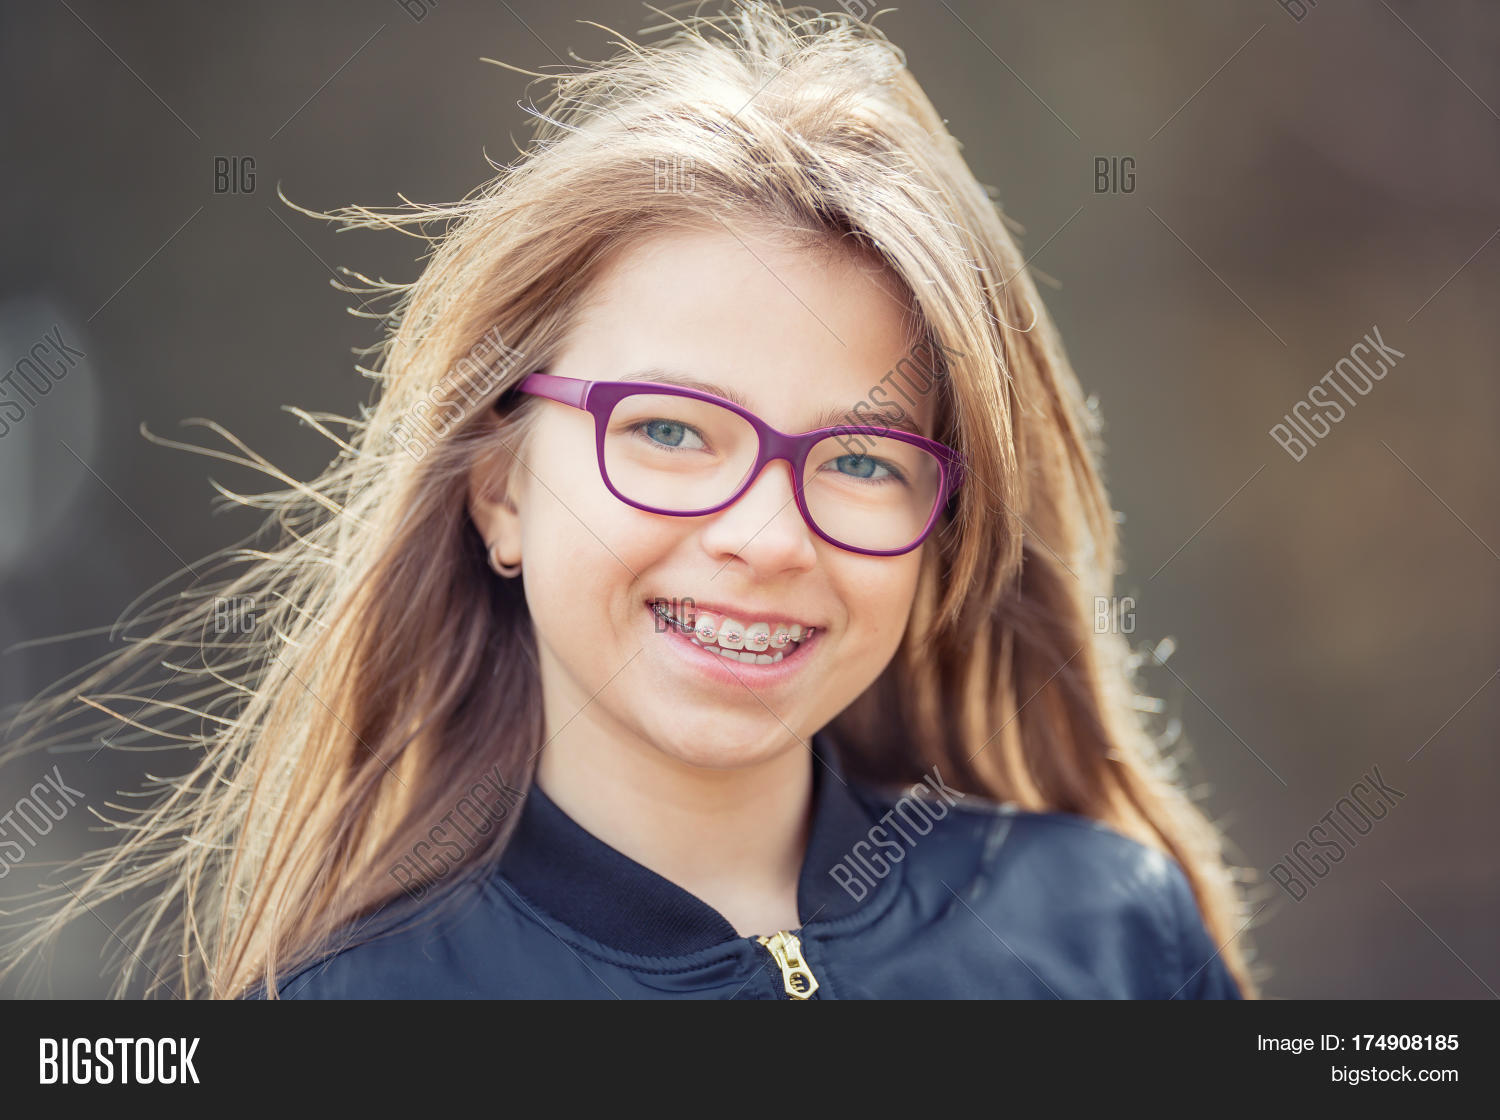 Cute teen girl with glasses